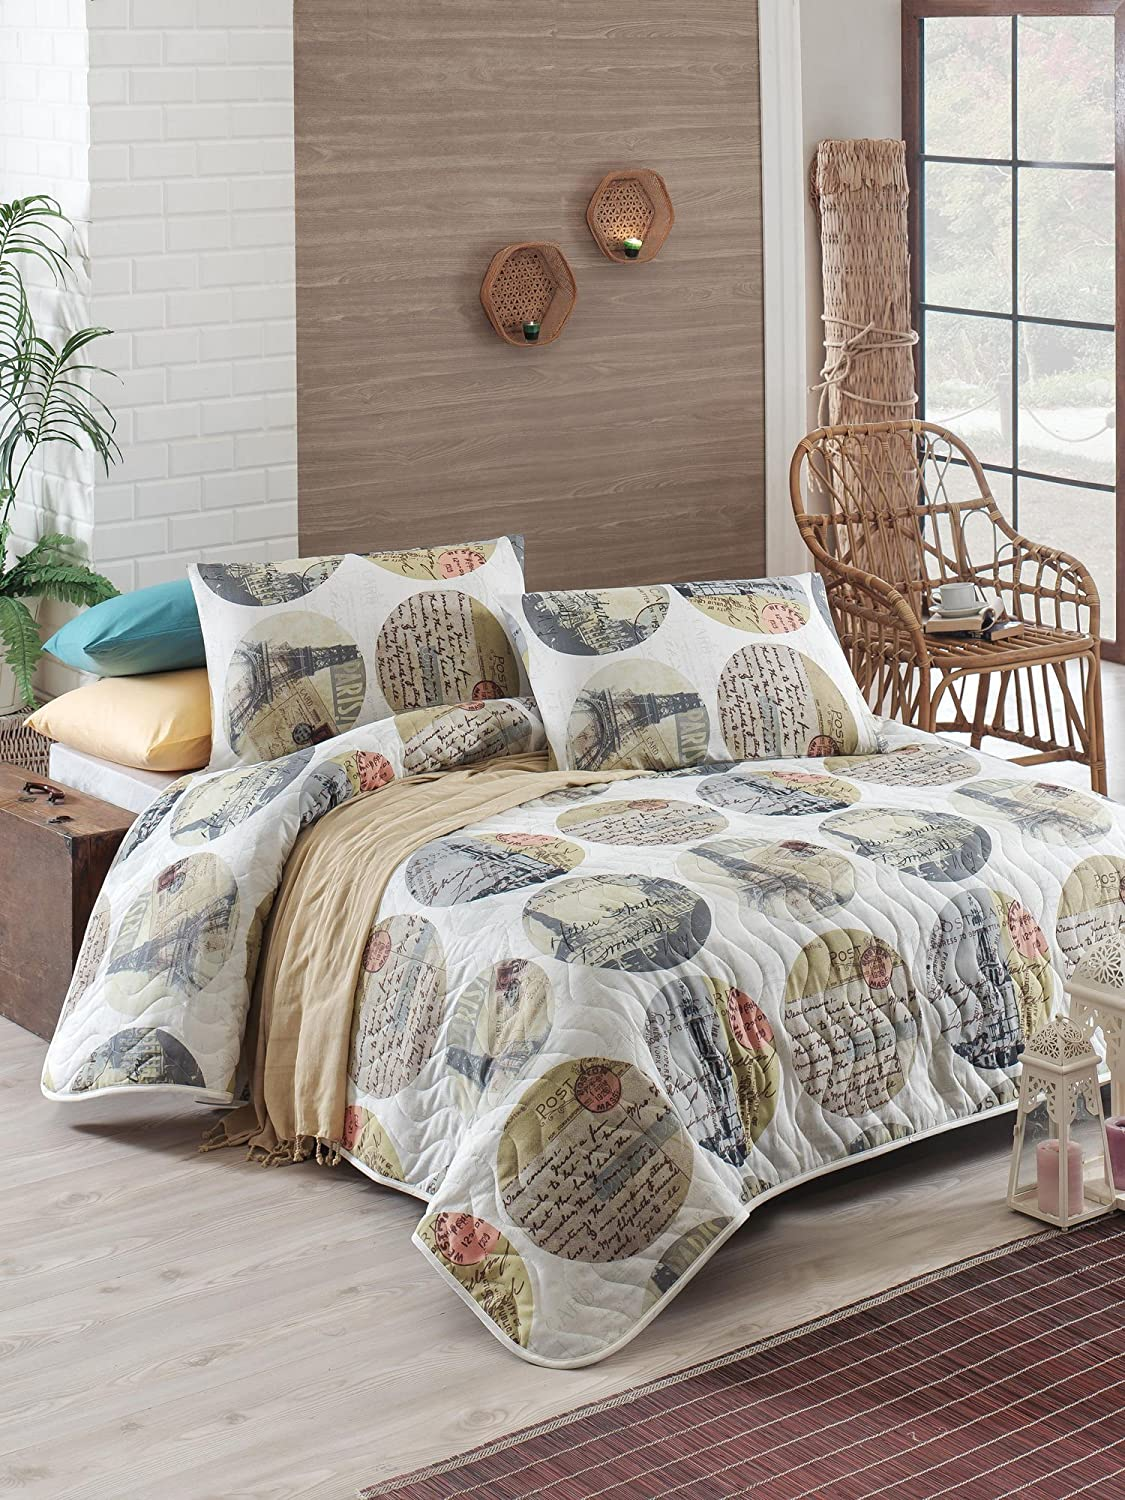 3 Pcs Soft Colored Full and Double Bed Size Bedroom Bedding 65% Cotton Double Quilted Bedspread Set 100% Fiber Filling Padded Paris Eiffel Tower France Love Romantic Colorful Circle Writing Bedspread LamodaHome 143EPJ9075